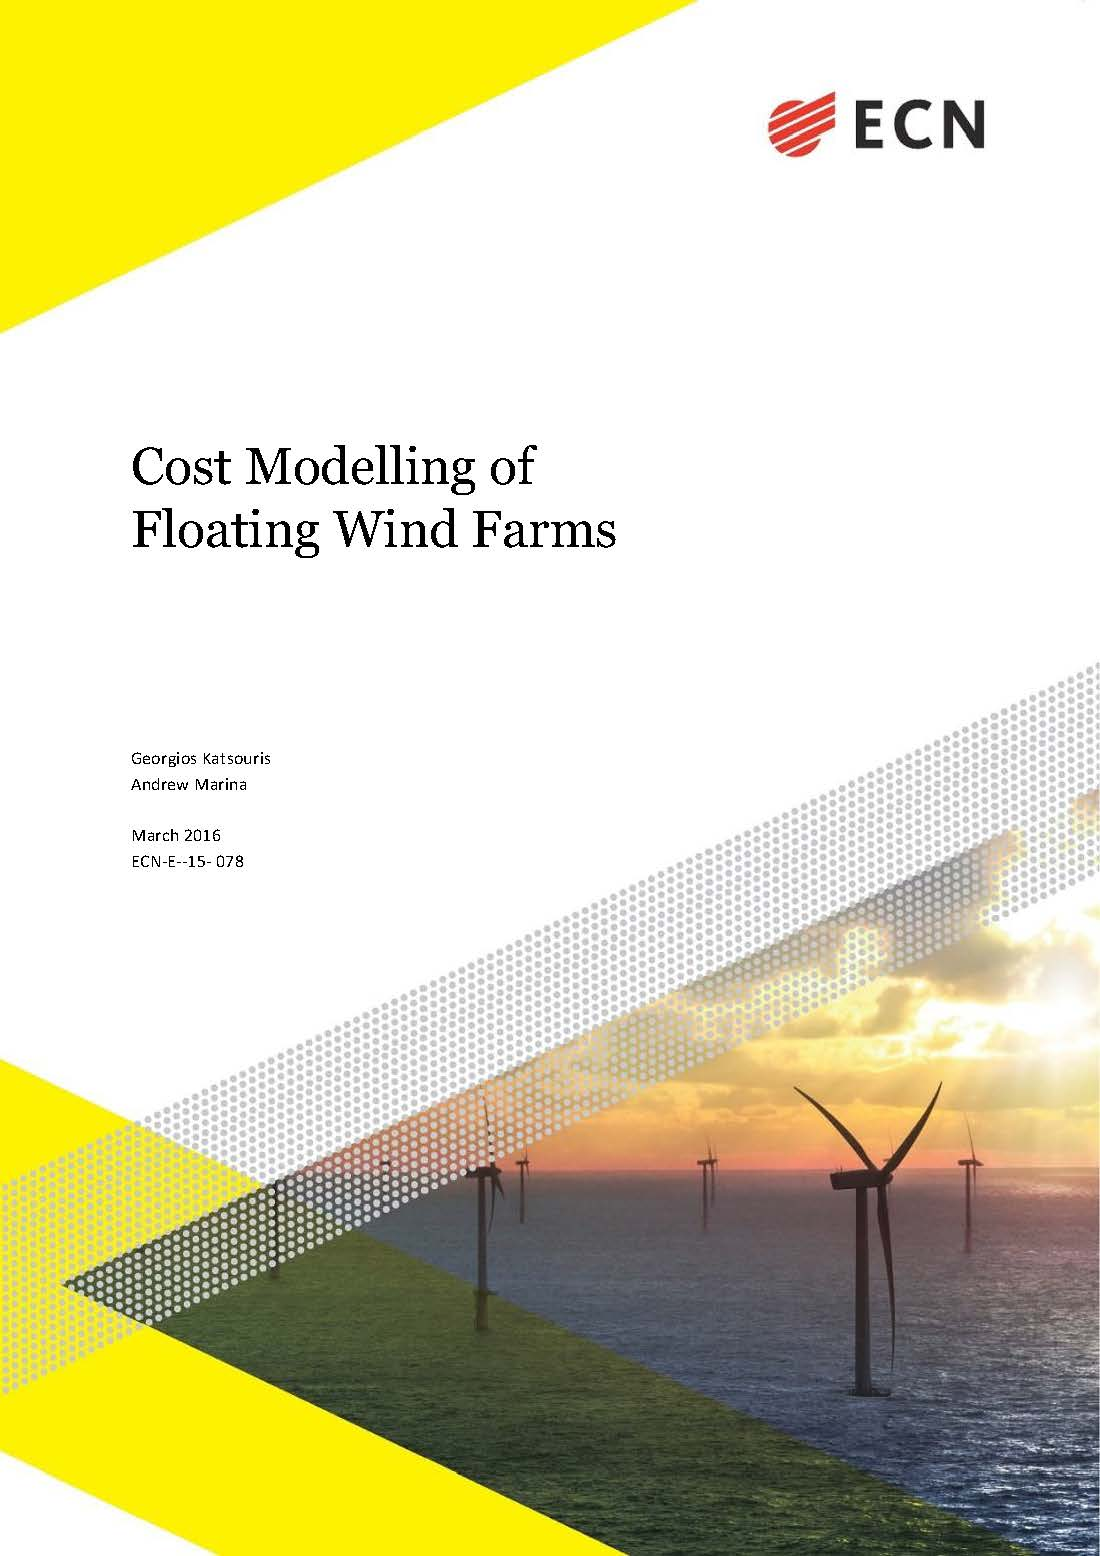 Cost Modeling of Floating Wind Farms – ECN 2016